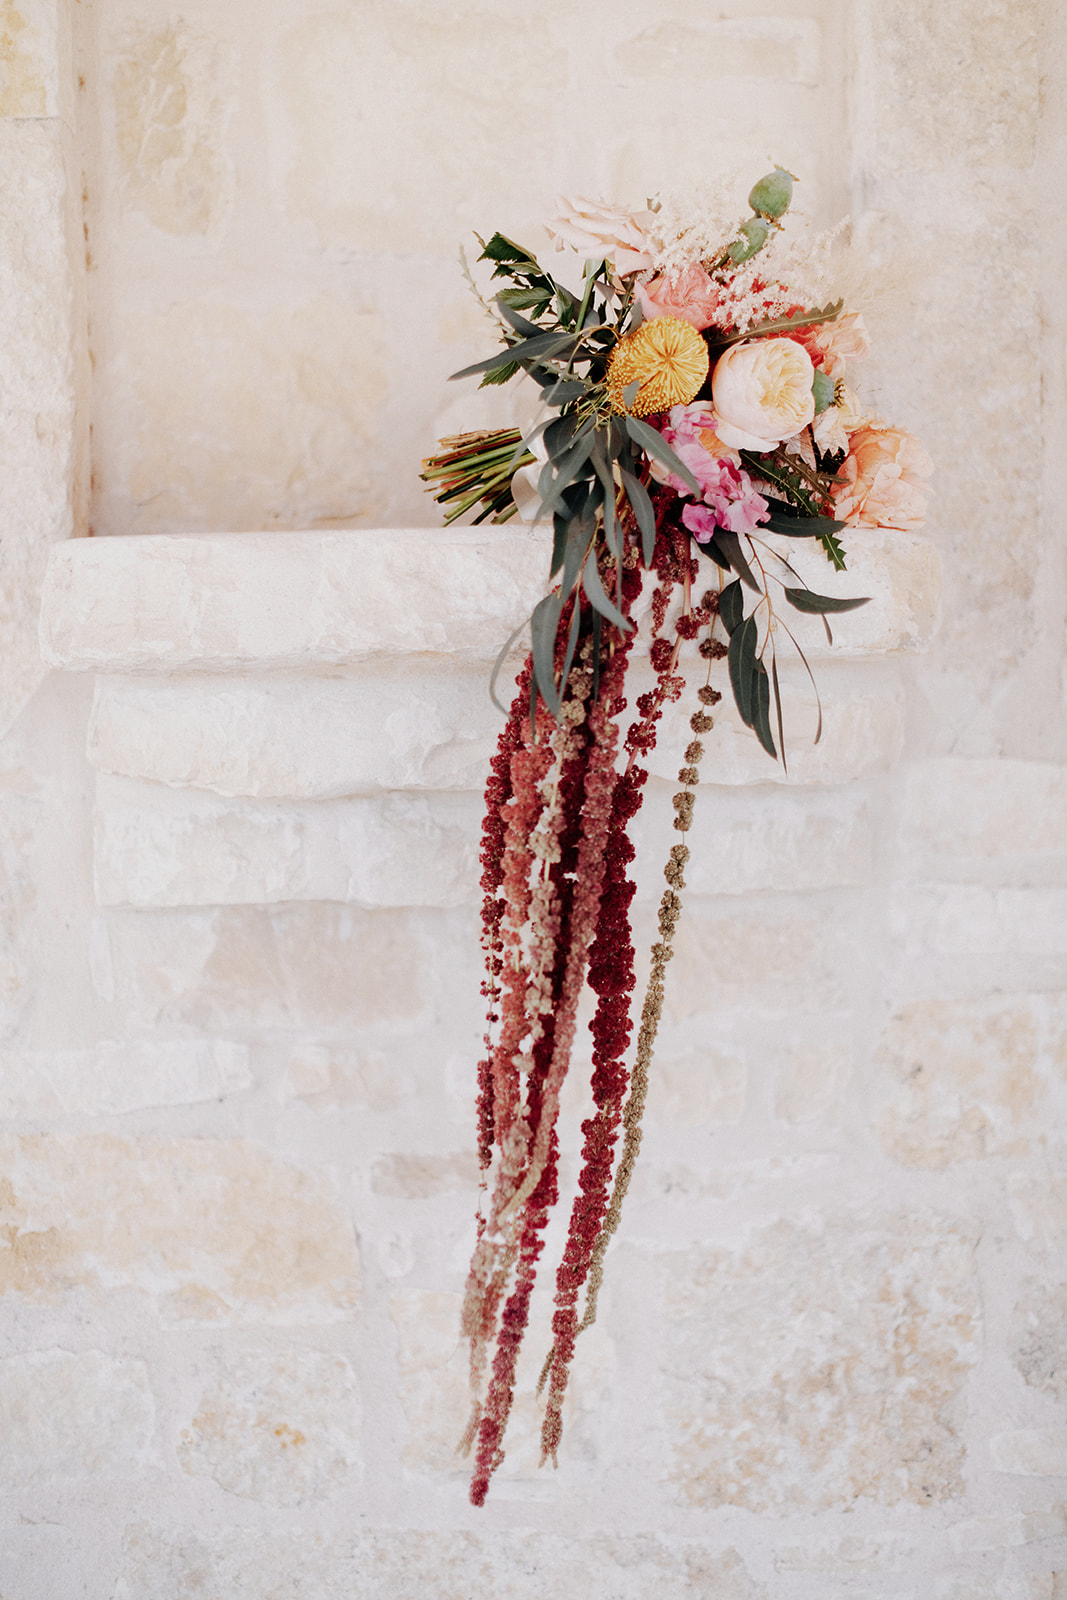 Featured: Hanging Amaranthus